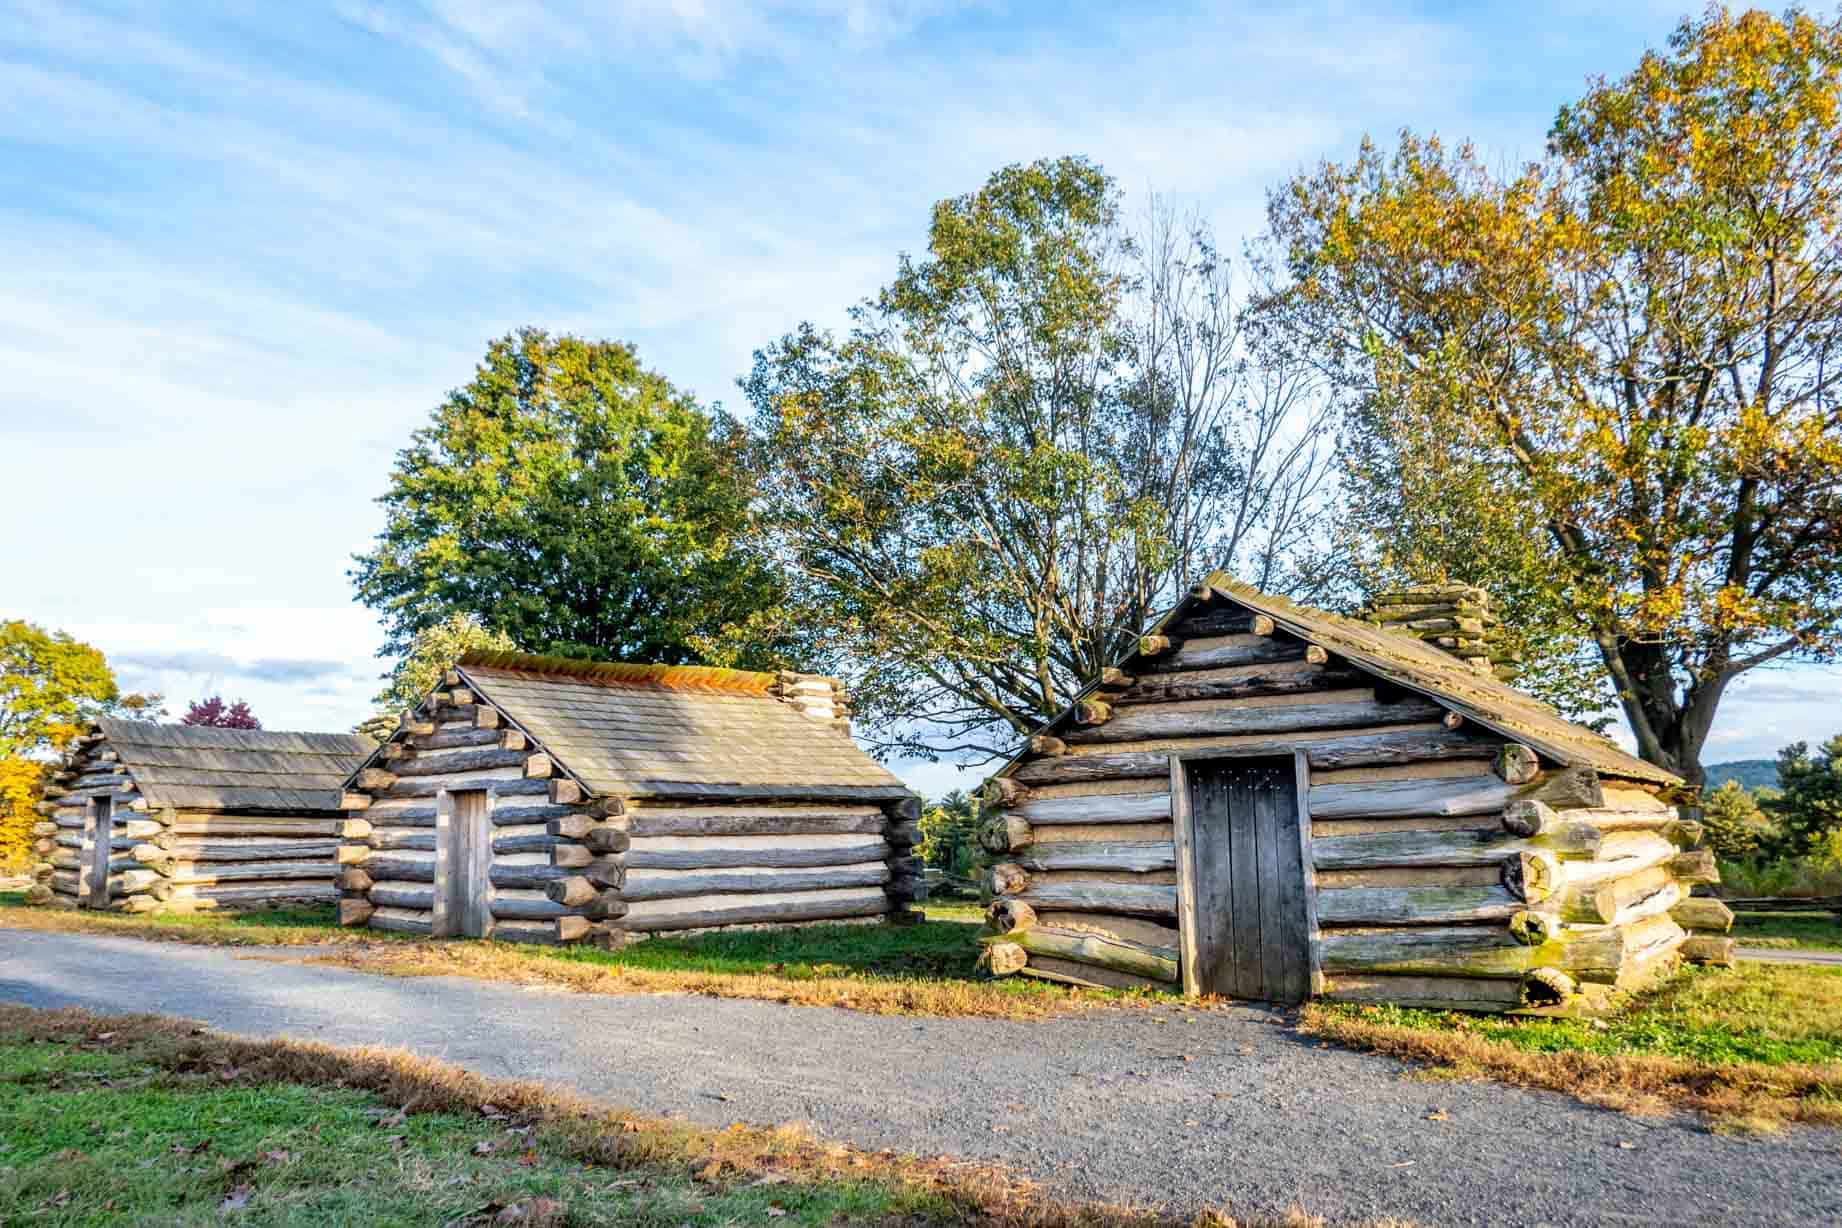 Three replica Revolutionary War cabins at Valley Forge National Historical Park